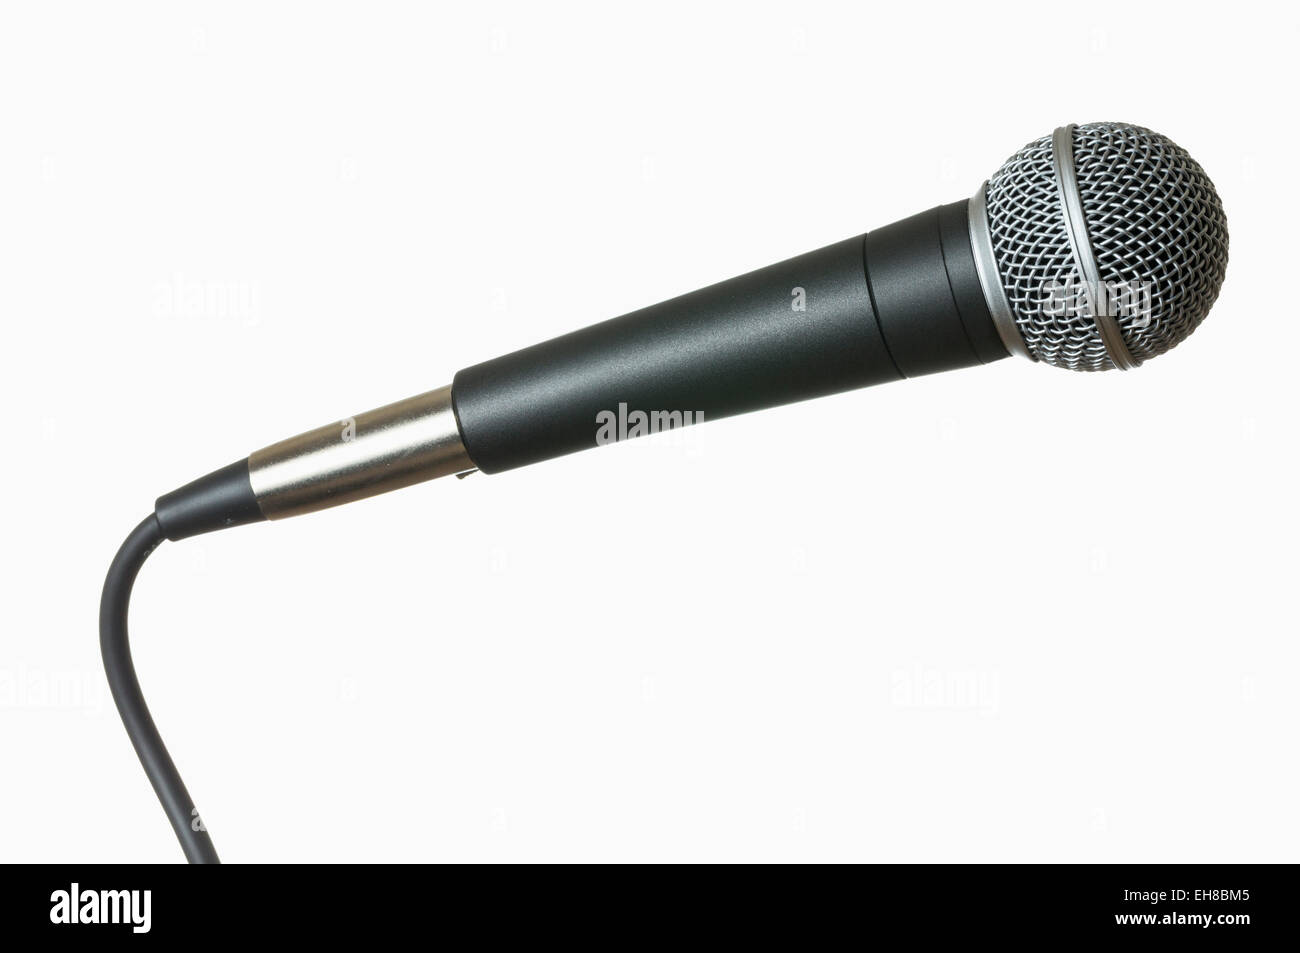 Microphone with cable isolated against white - Stock Image